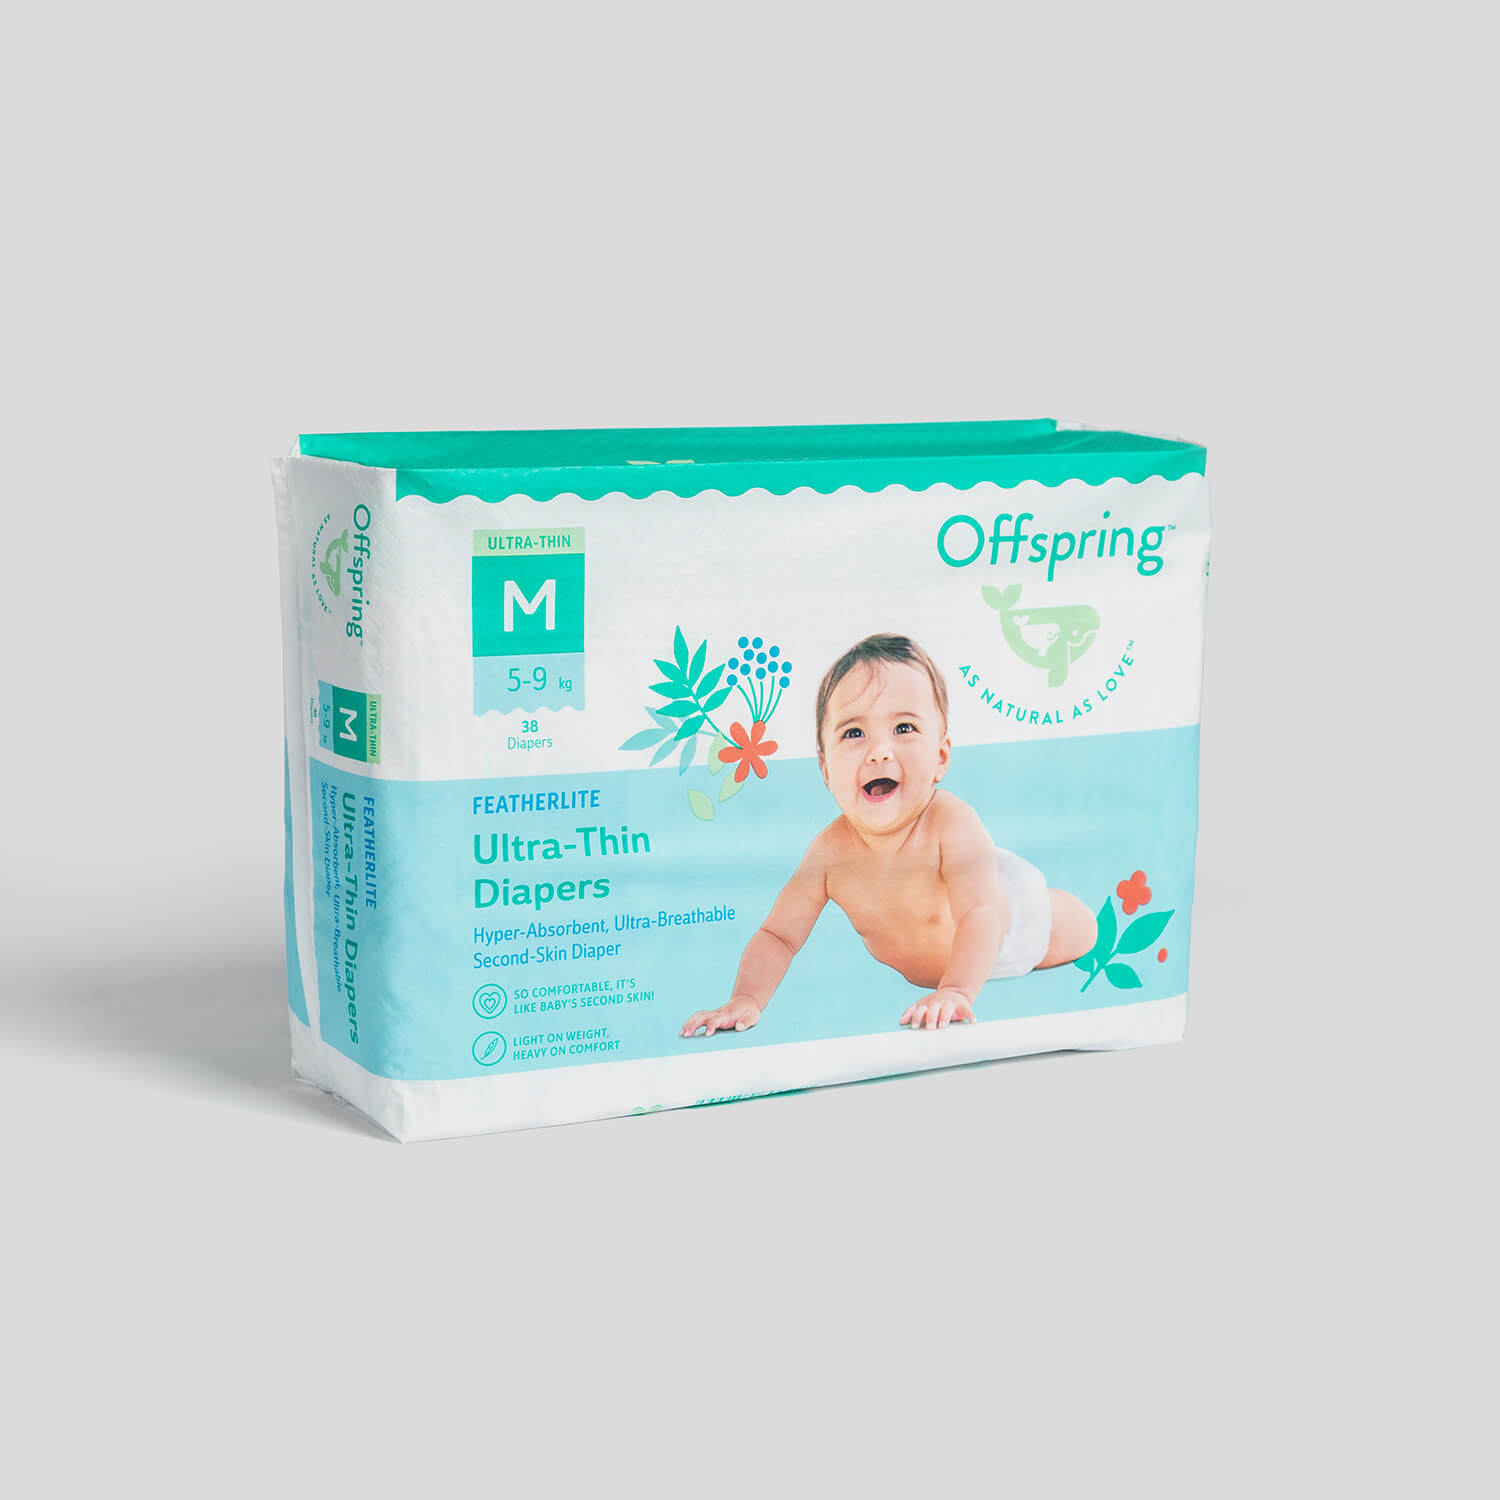 Ultra-Thin Baby Diapers